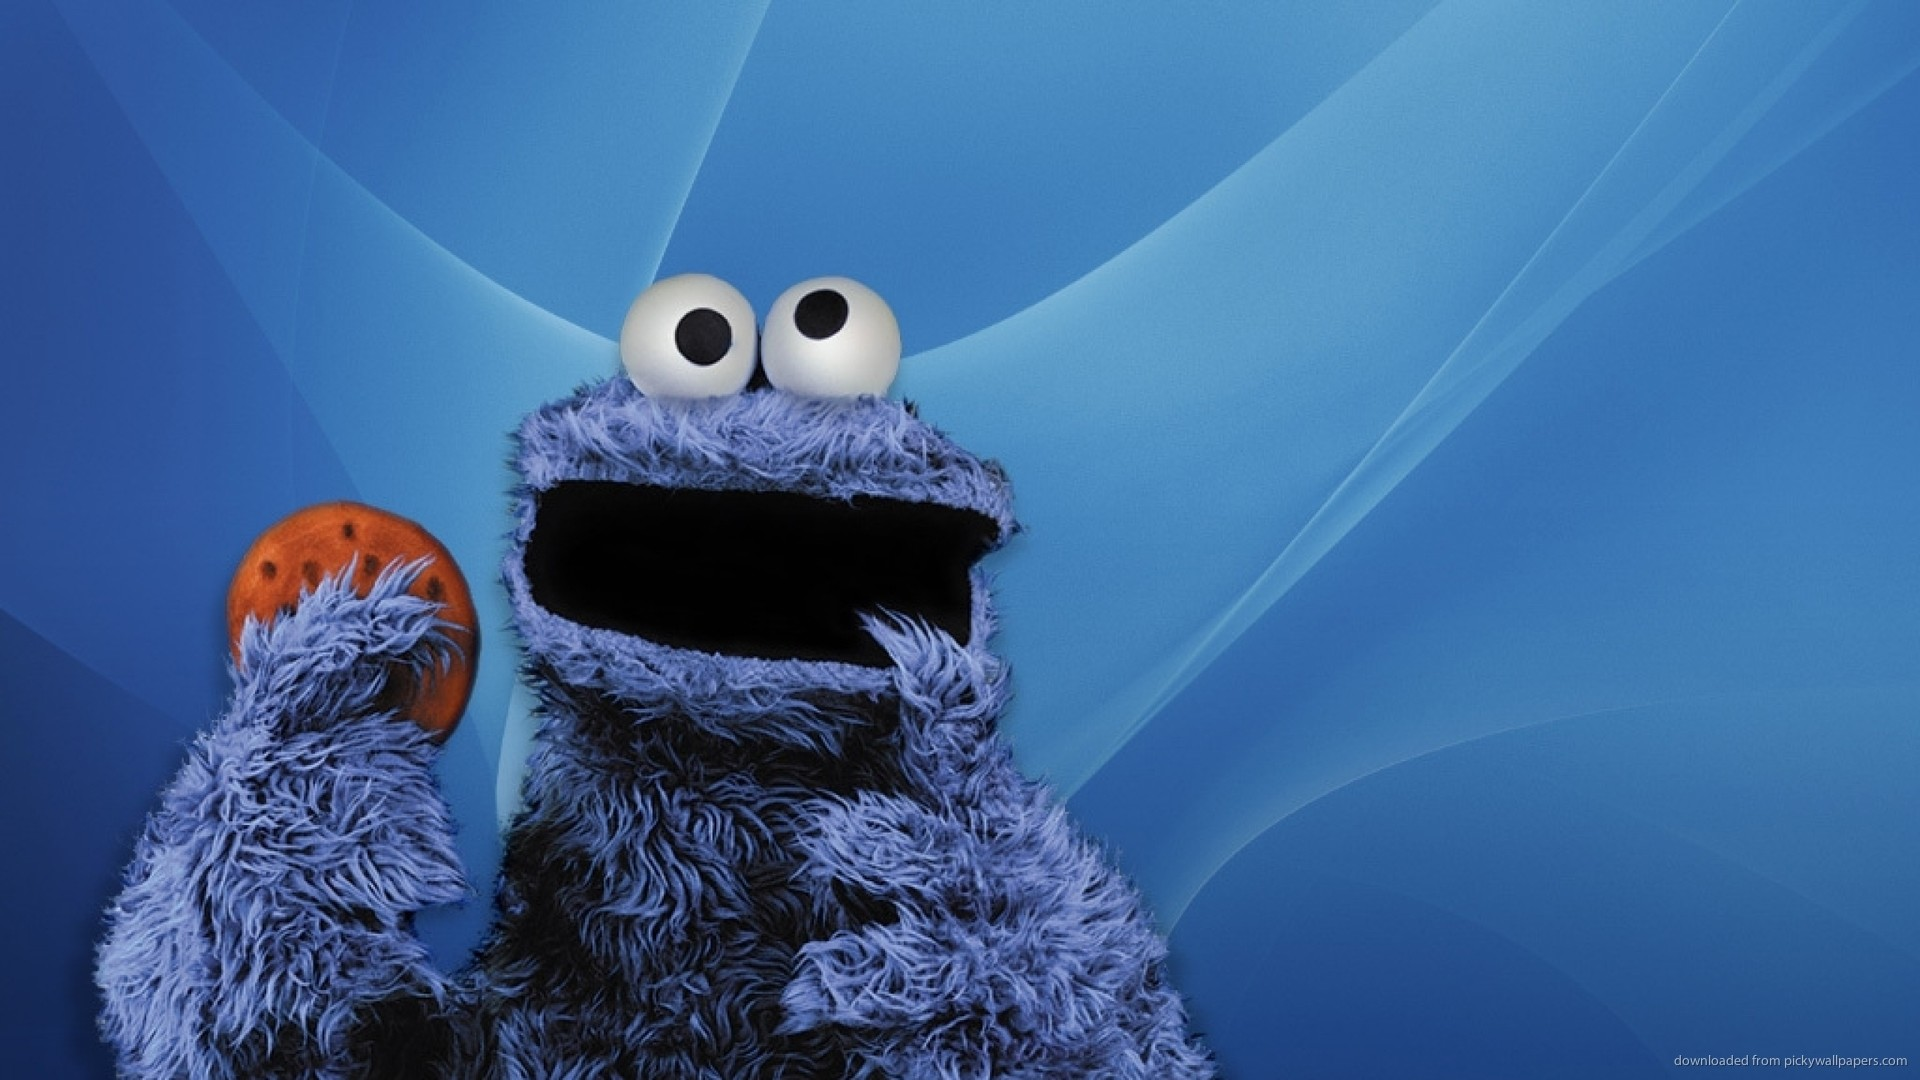 Cookie Monster Wallpaper HD (70+ images)